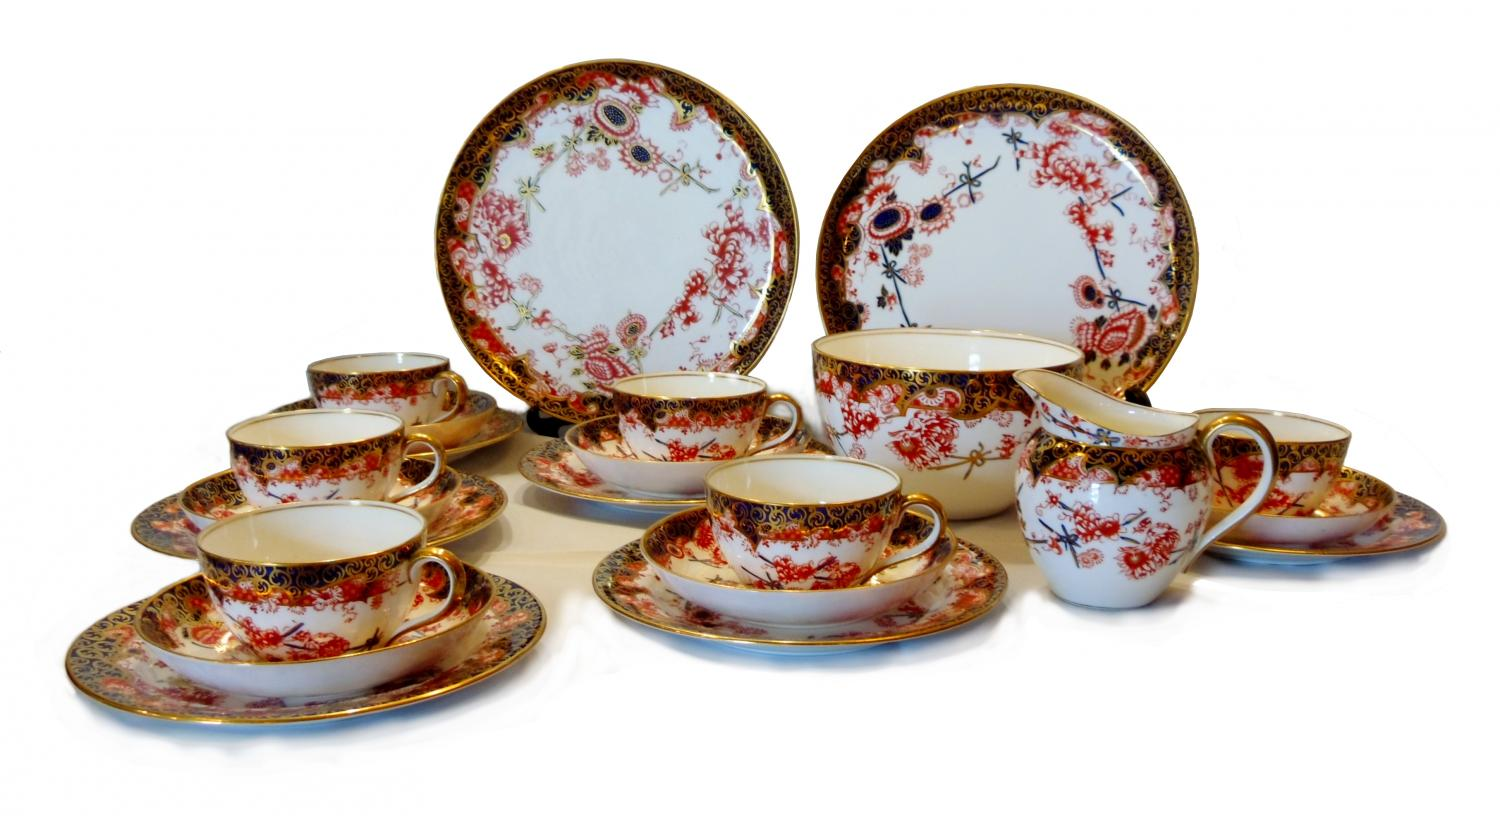 royal crown derby teaset in ceramics